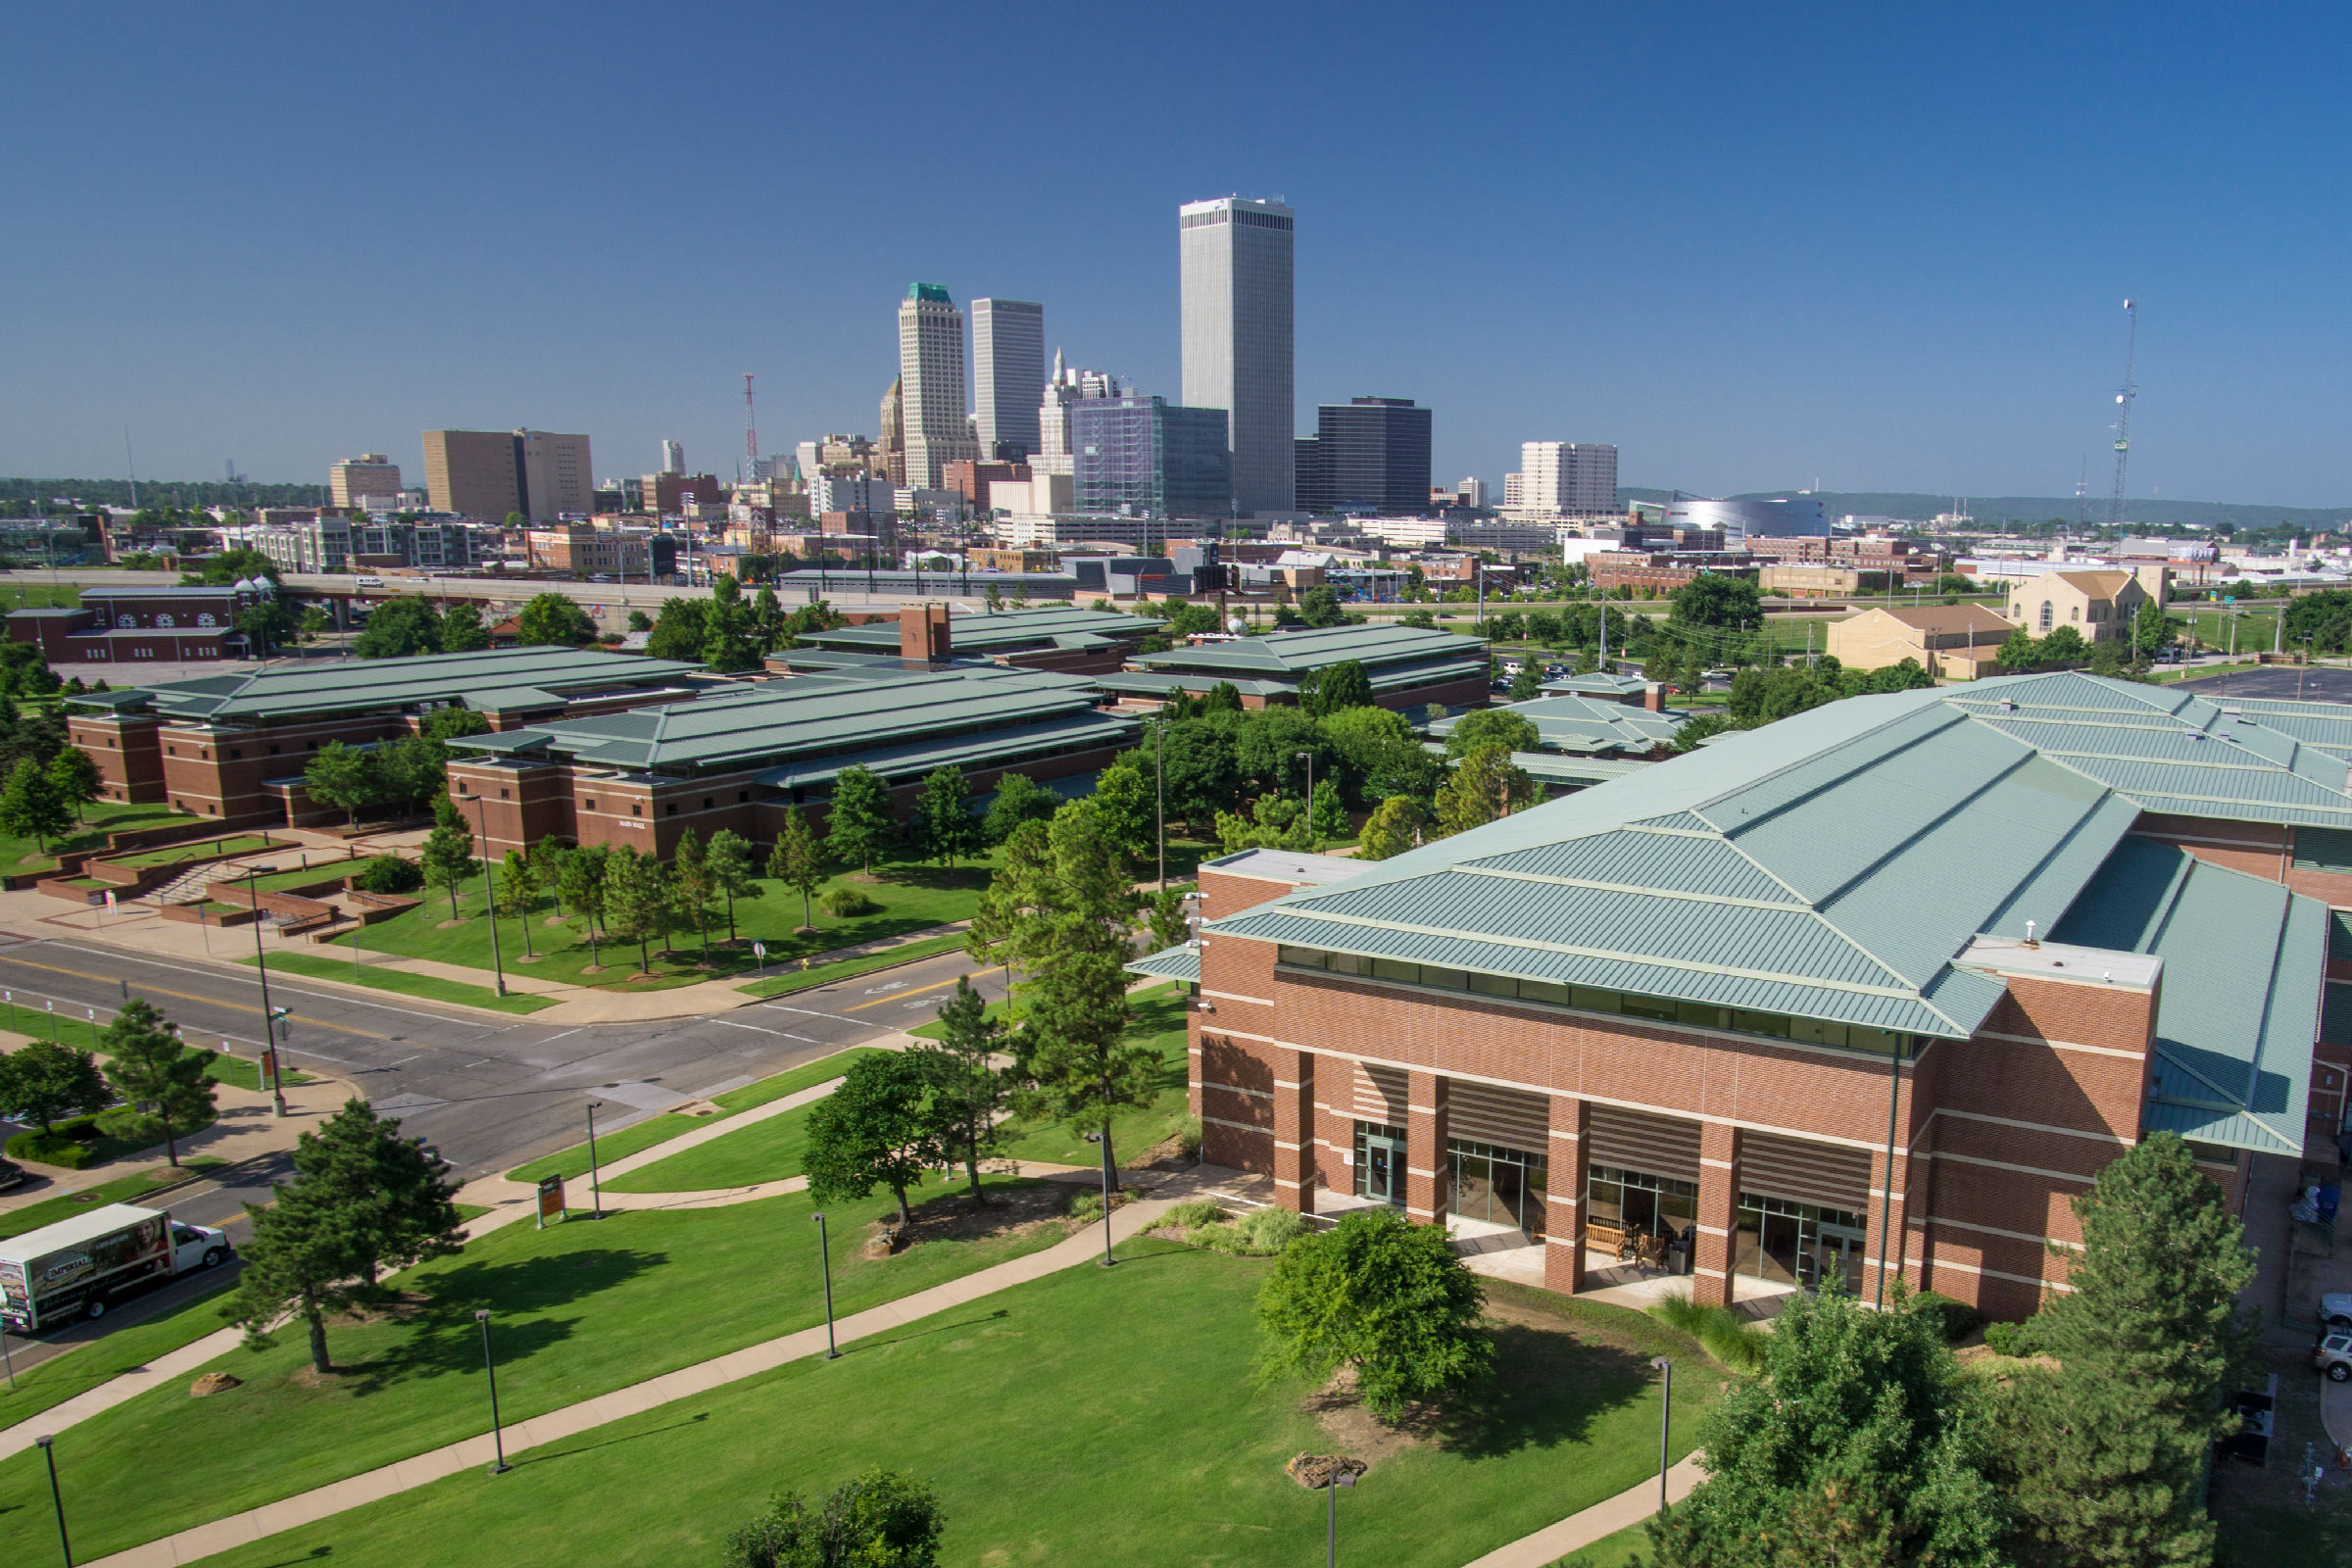 OSU-Tulsa with Tulsa Skyline in background